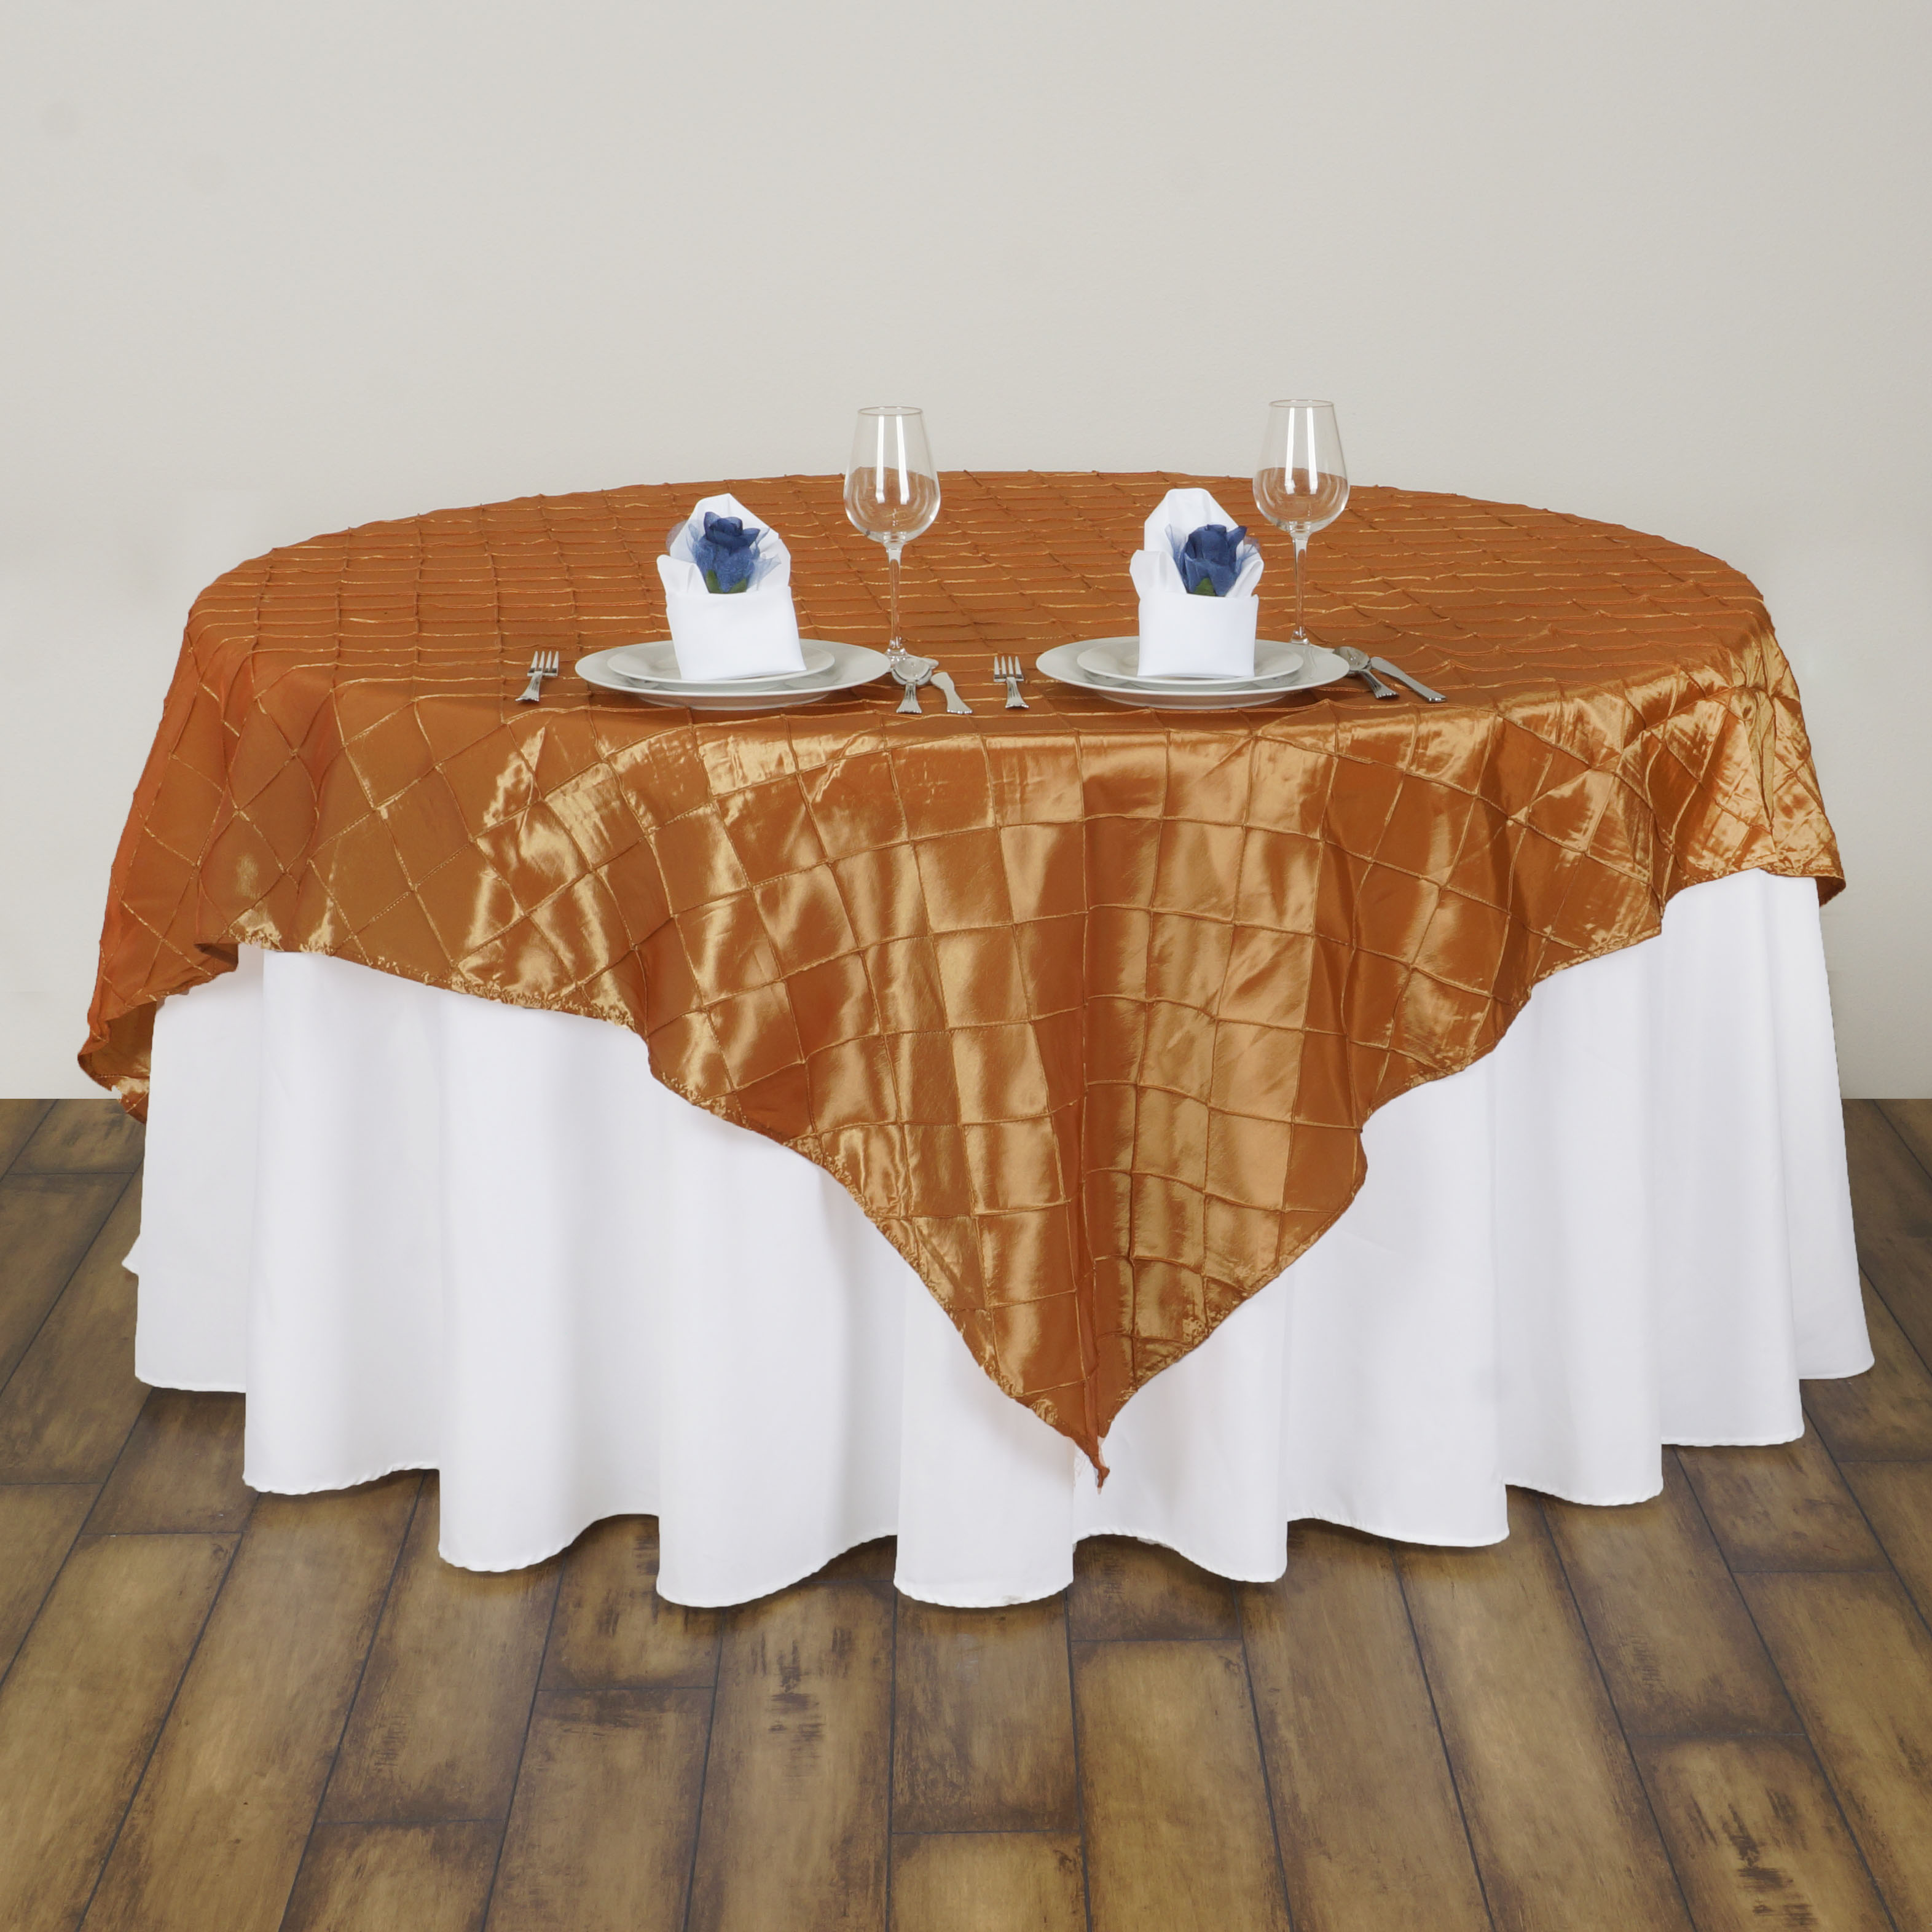 10 Pcs 72x72 Square Pintuck TABLE OVERLAY Wedding Linens Tablecloths Wh